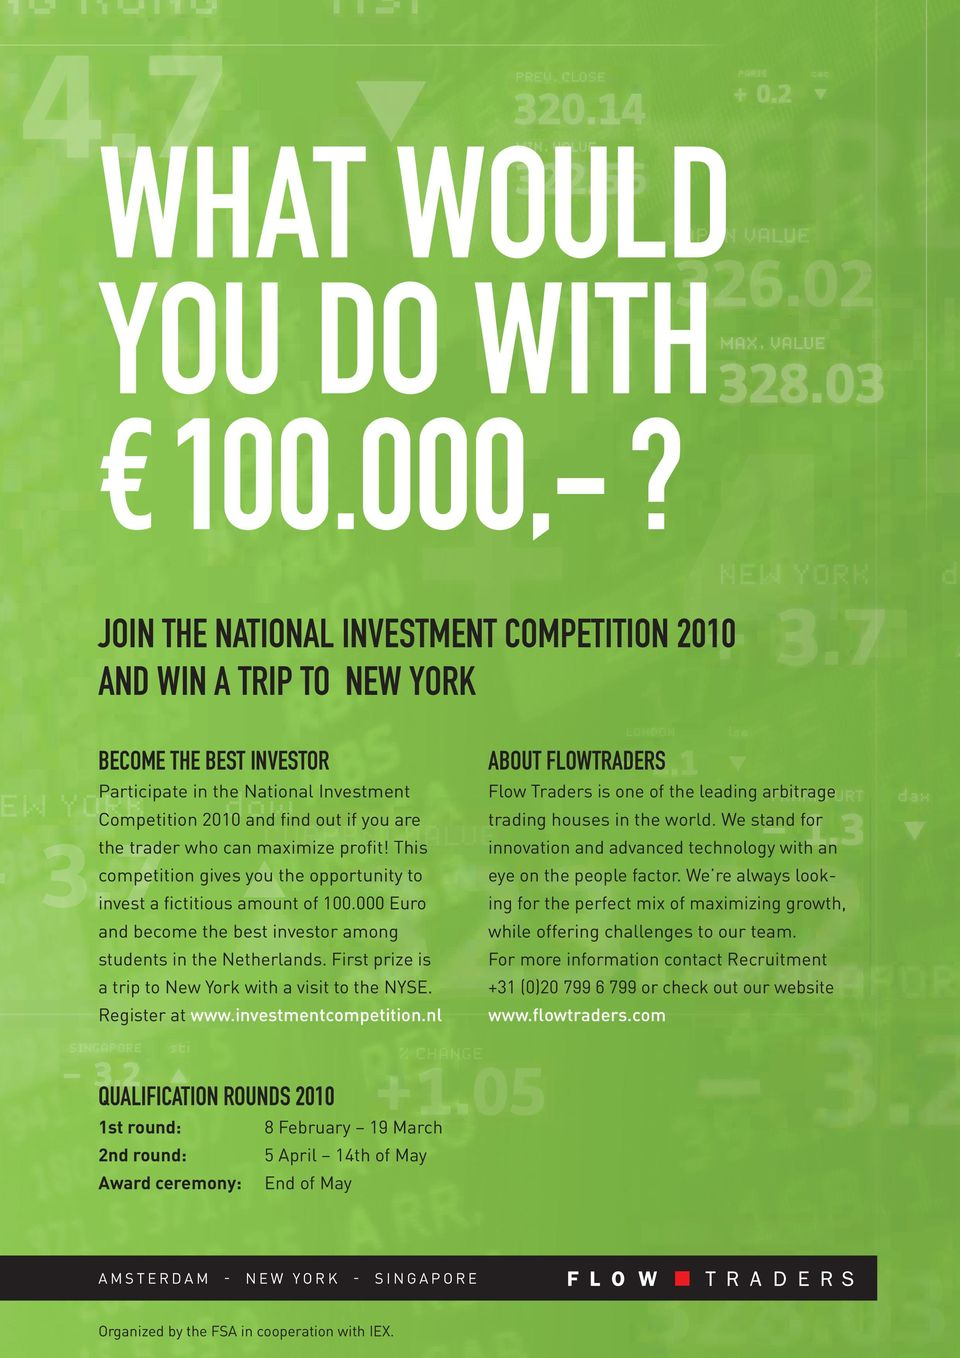 Competition 2010 and find out if you are the trader who can maximize profit! This competition gives you the opportunity to invest a fictitious amount of 100.